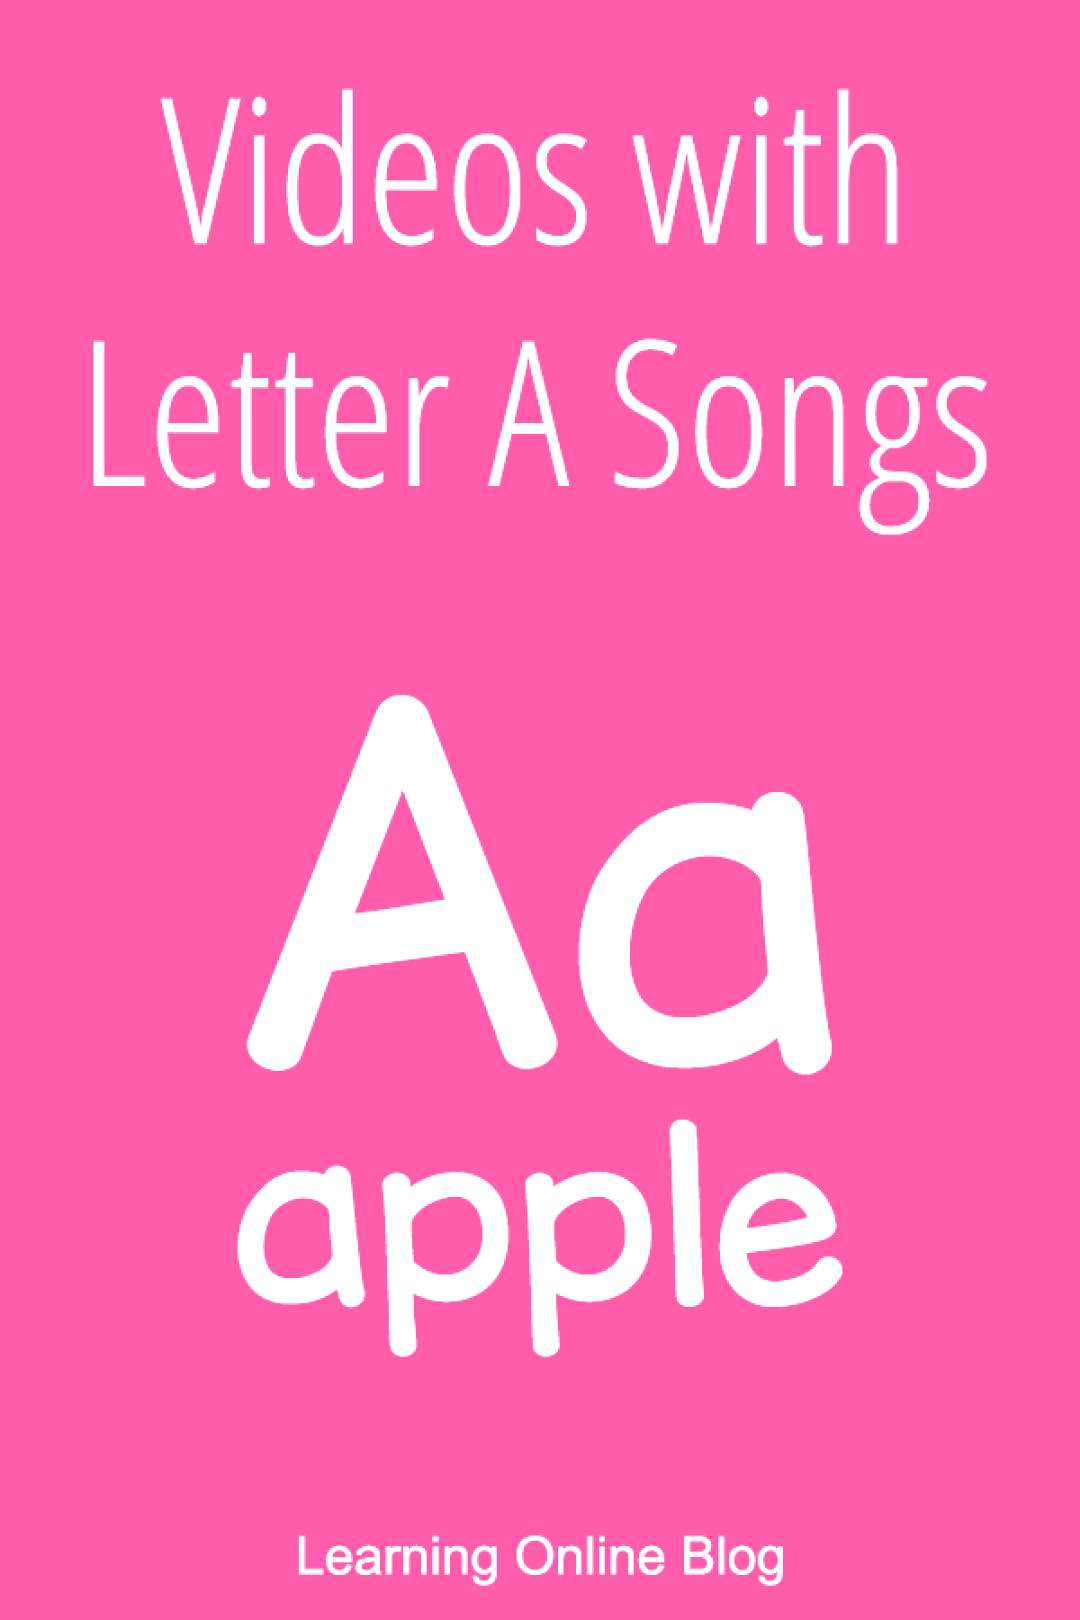 Videos with Letter A Songs Use these videos with letter a songs to teach children phonics and lette